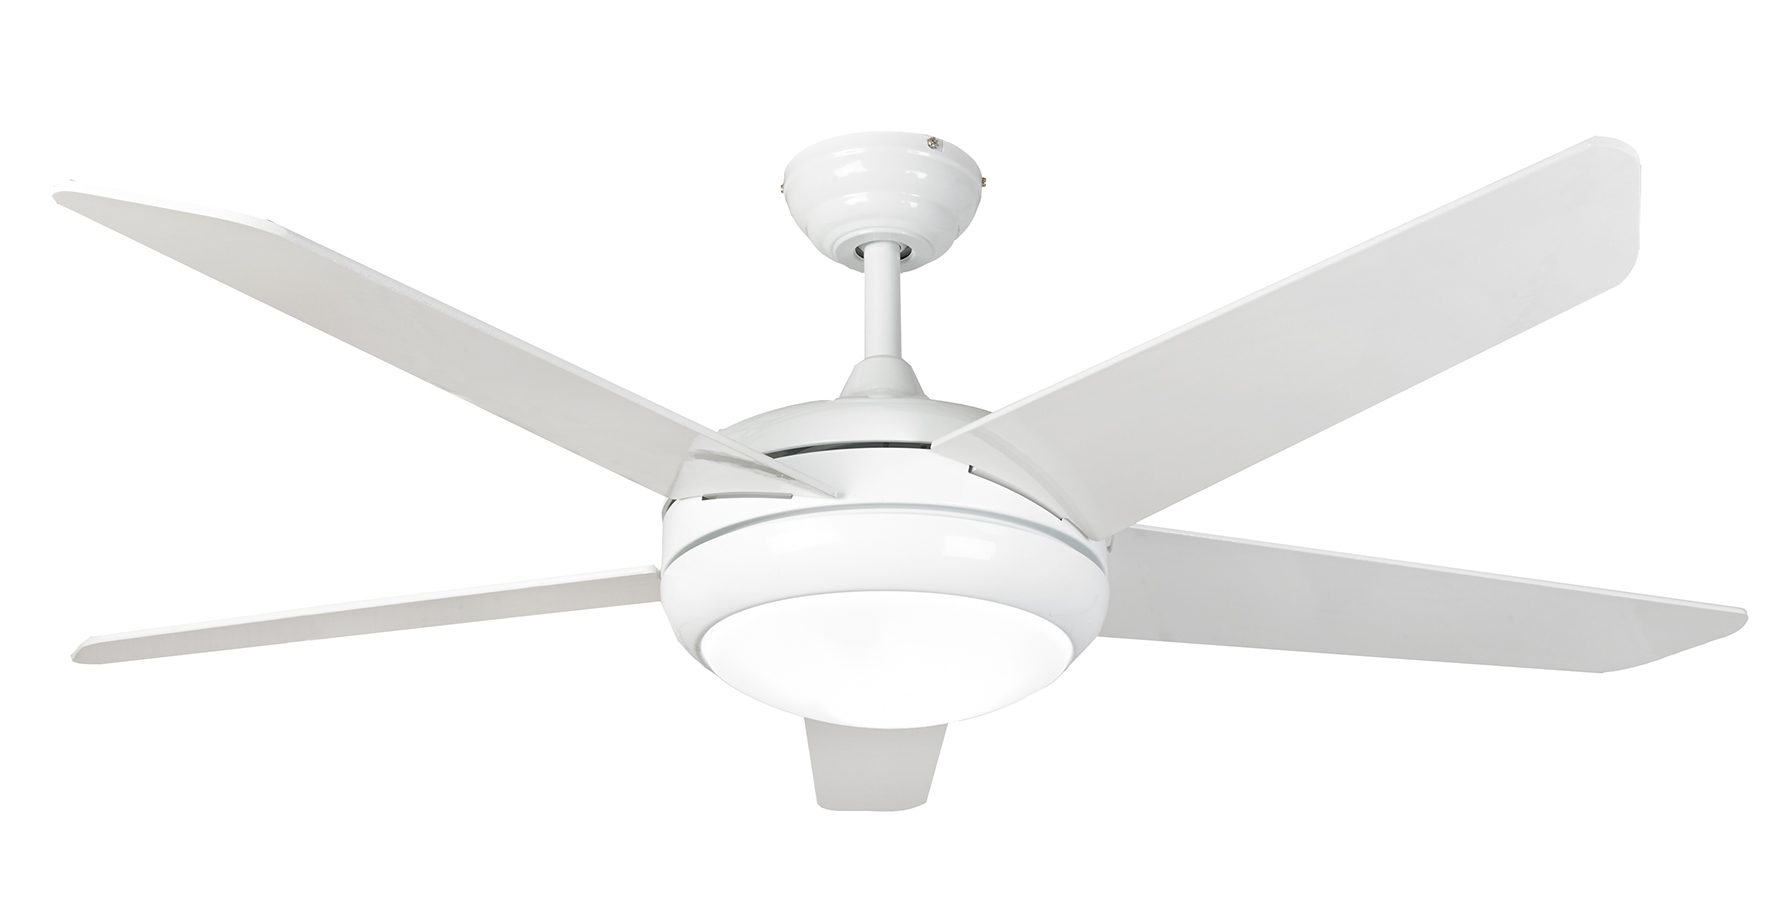 Eurofans neptune 44 white ceiling fan remote control led light 115861 eurofans neptune 44 white ceiling fan remote control led light 115861 mozeypictures